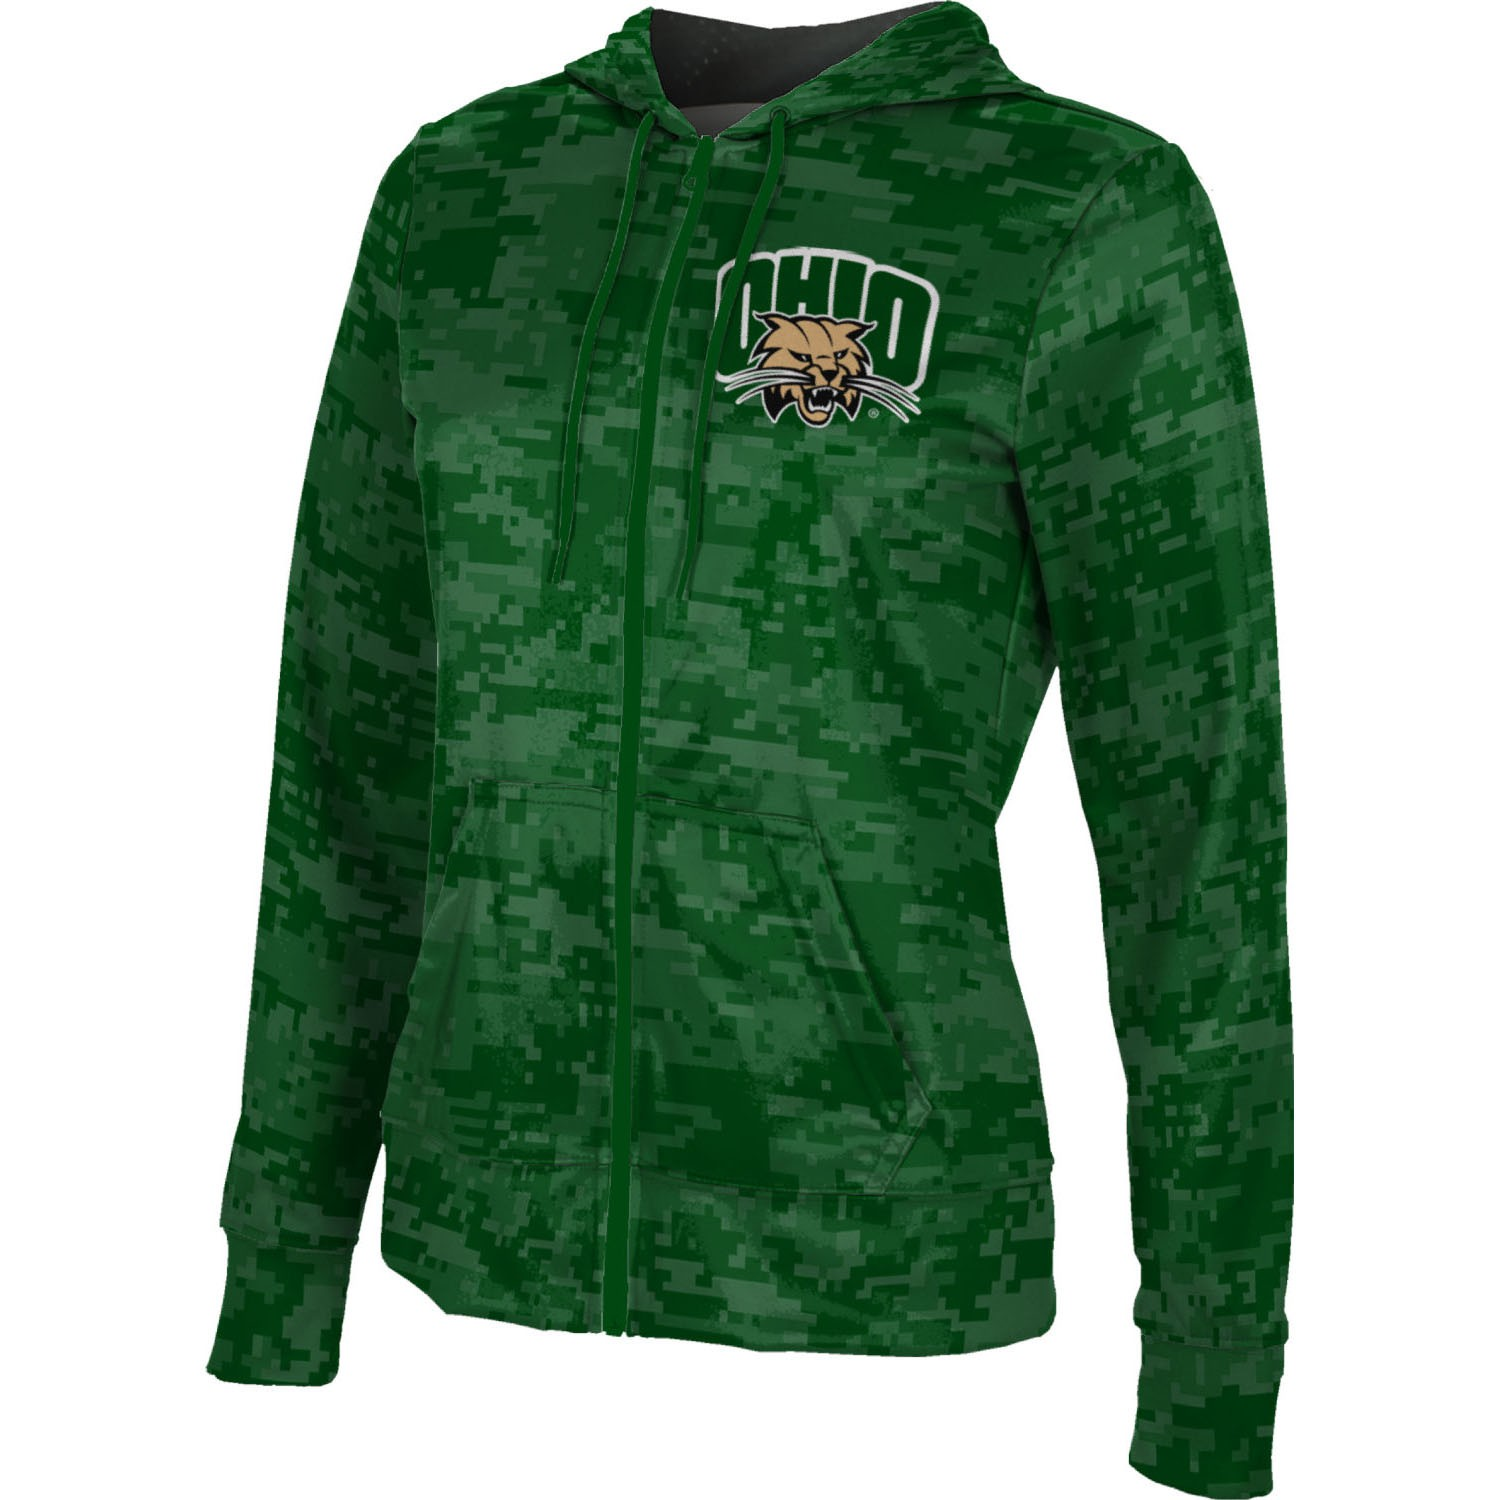 ProSphere Women's Ohio University Digital Fullzip Hoodie